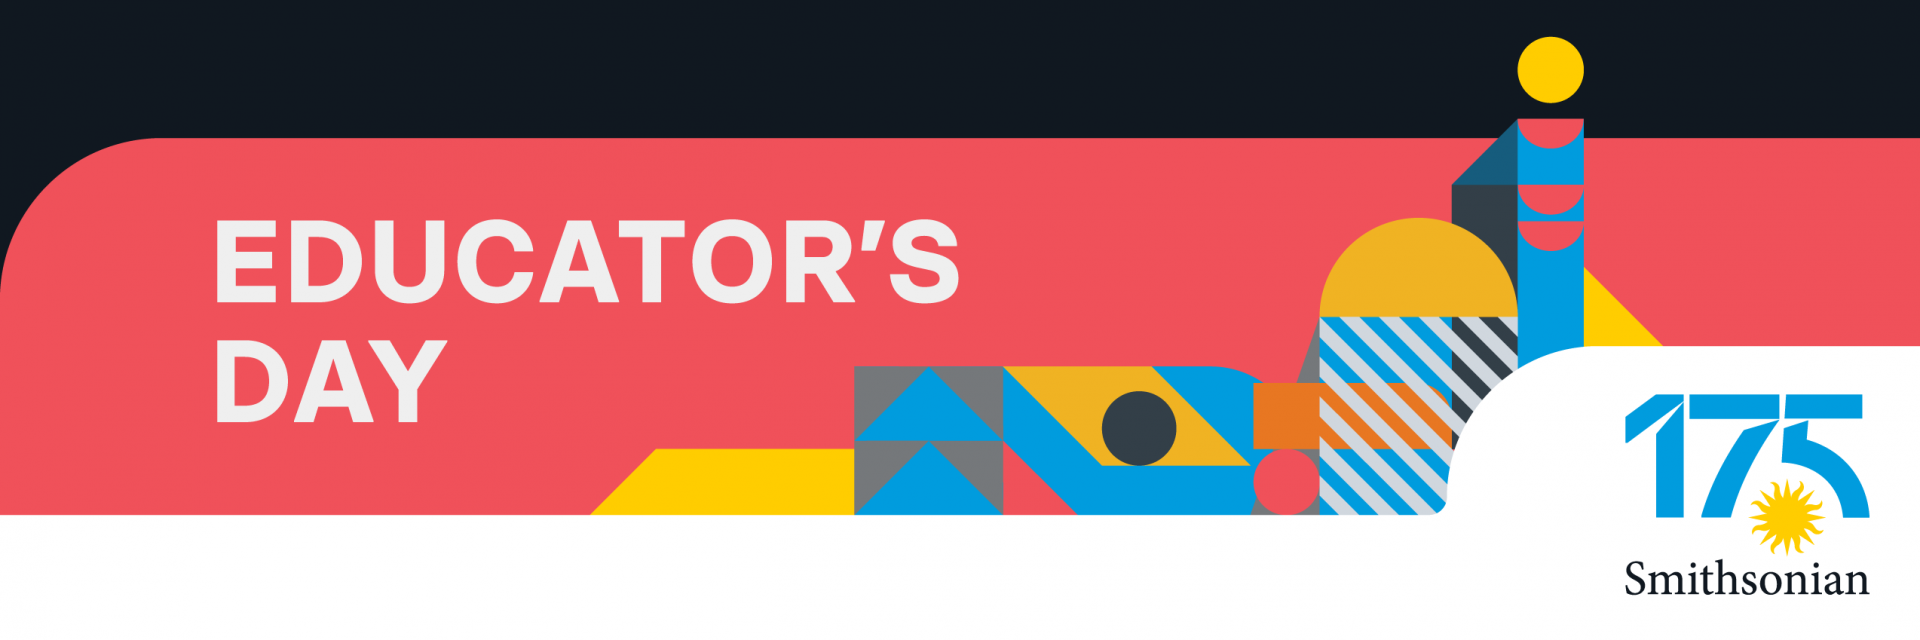 Educators Day graphic with geometric shapes